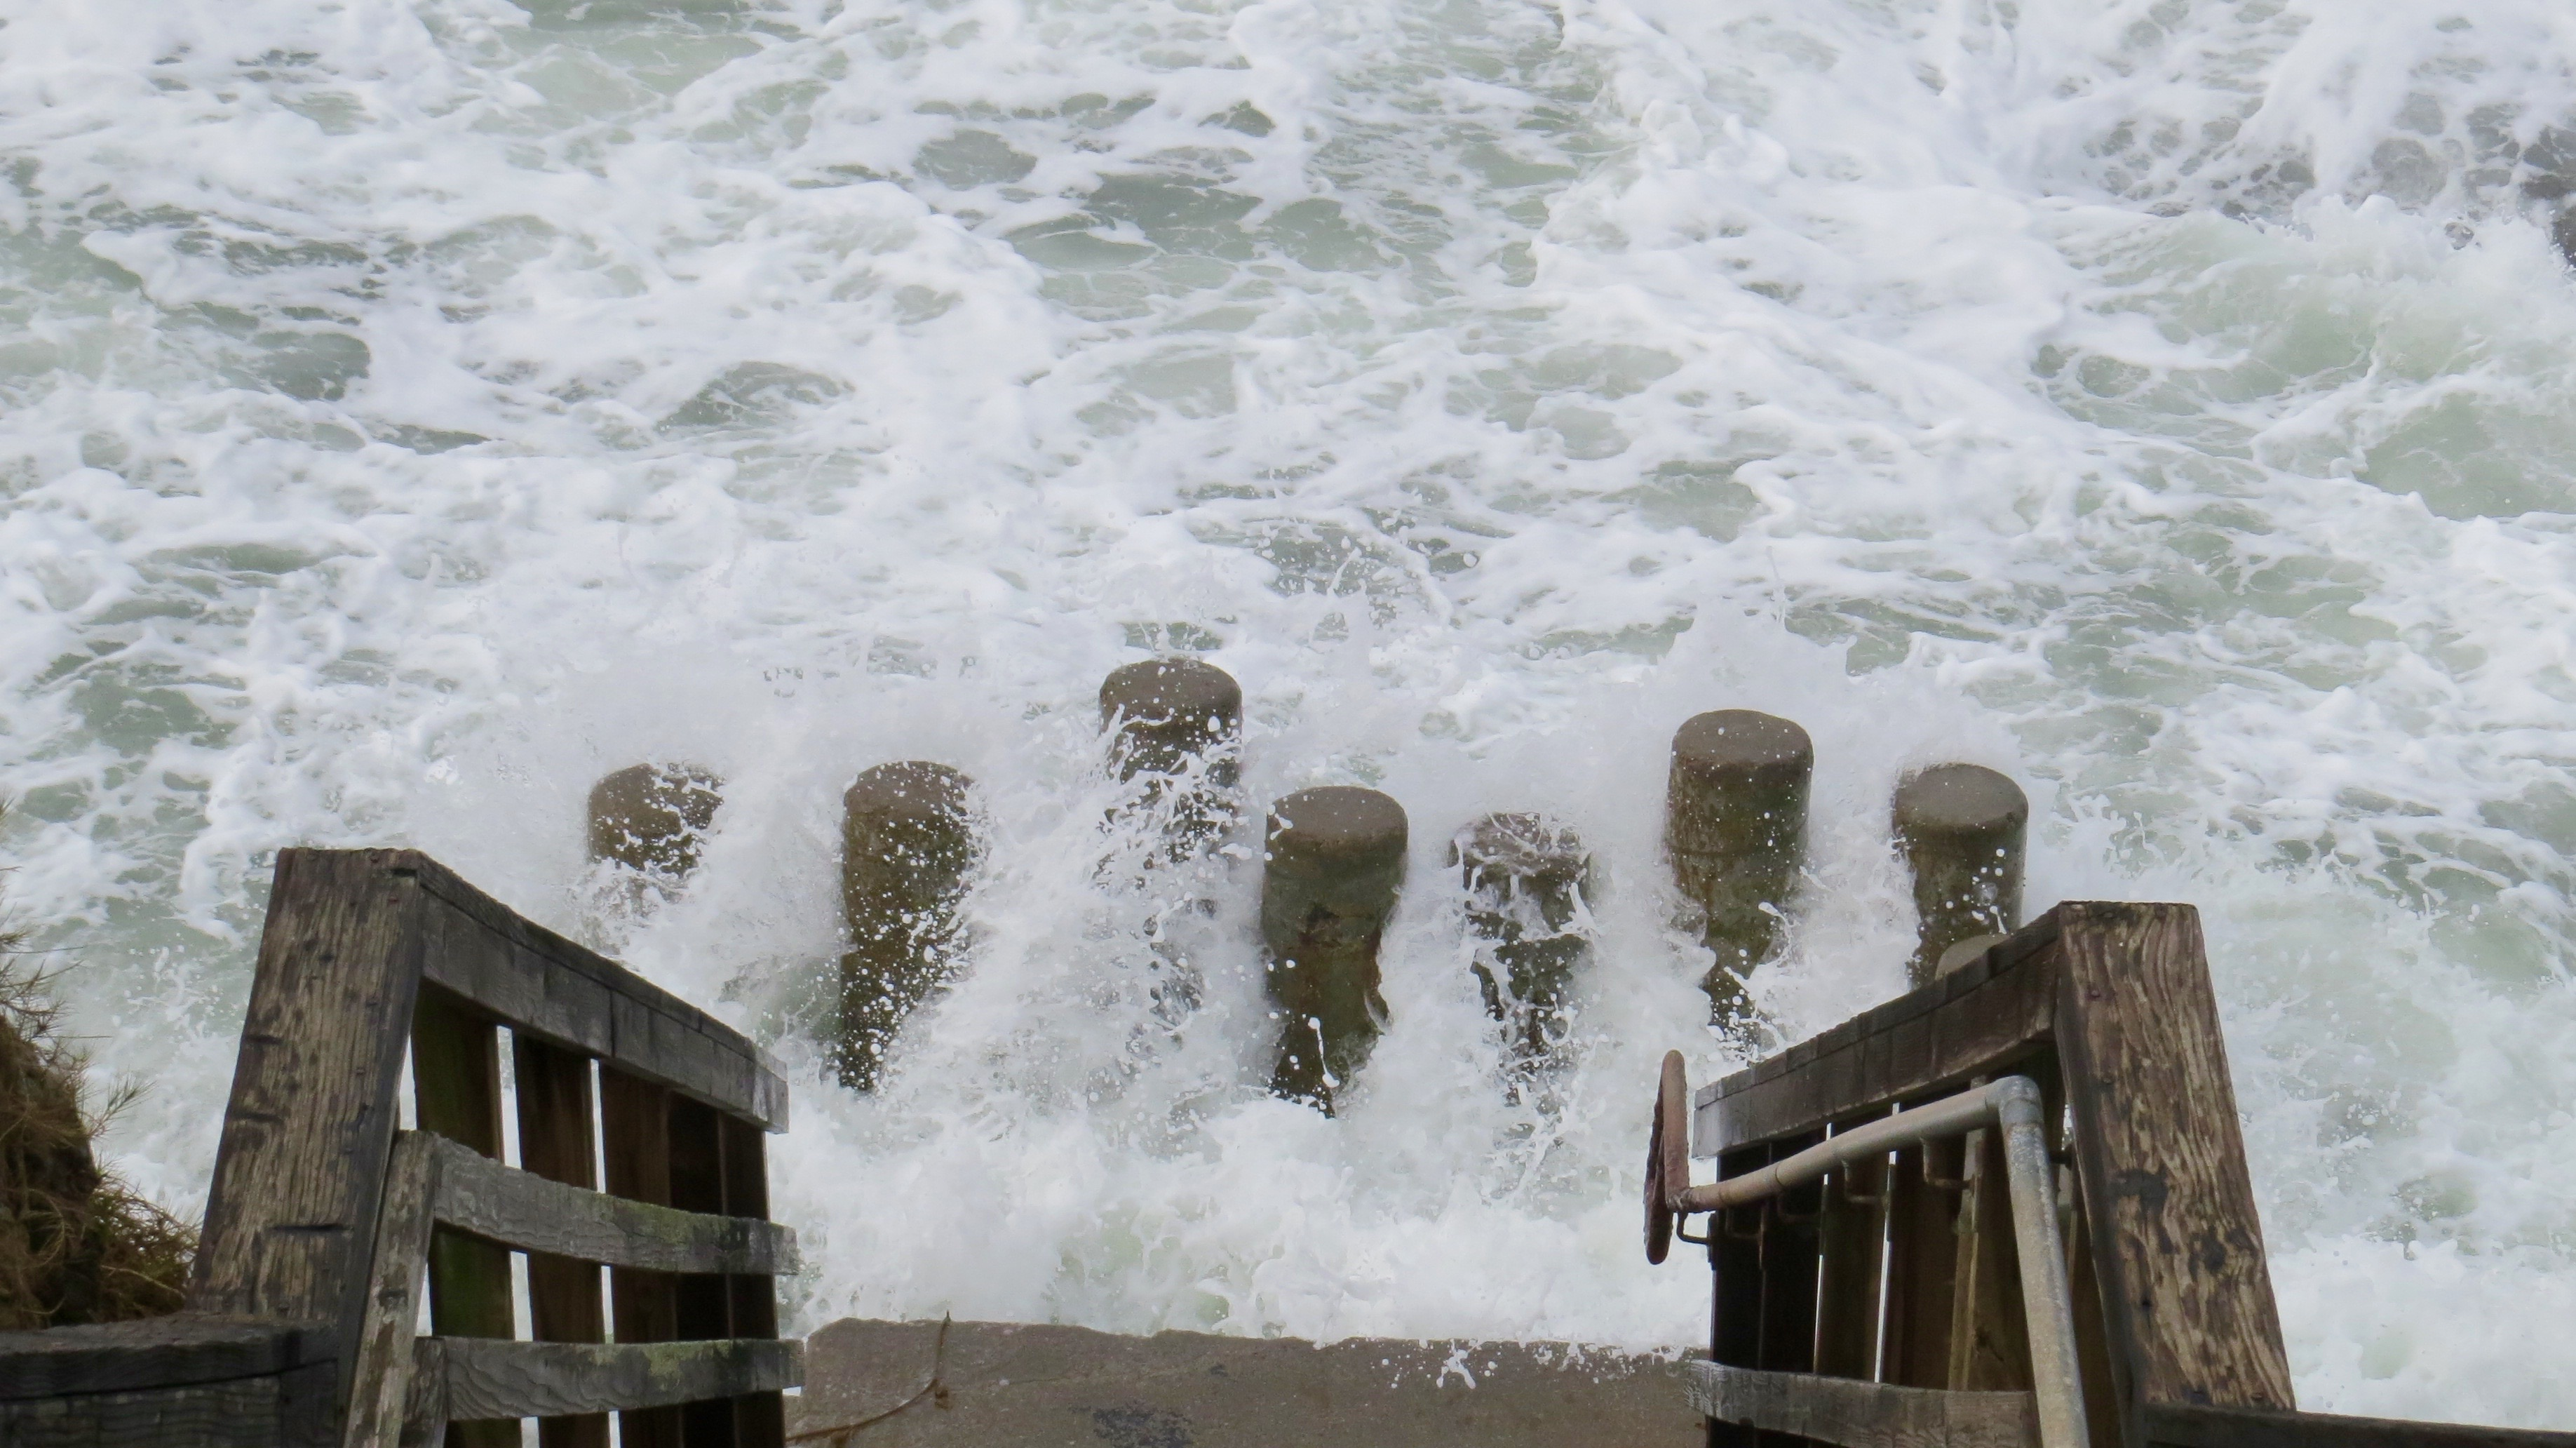 When it's low tide I usually walk down the stairs to the tidal pools. Not this week. Sometimes  the Pacific gets unruly.